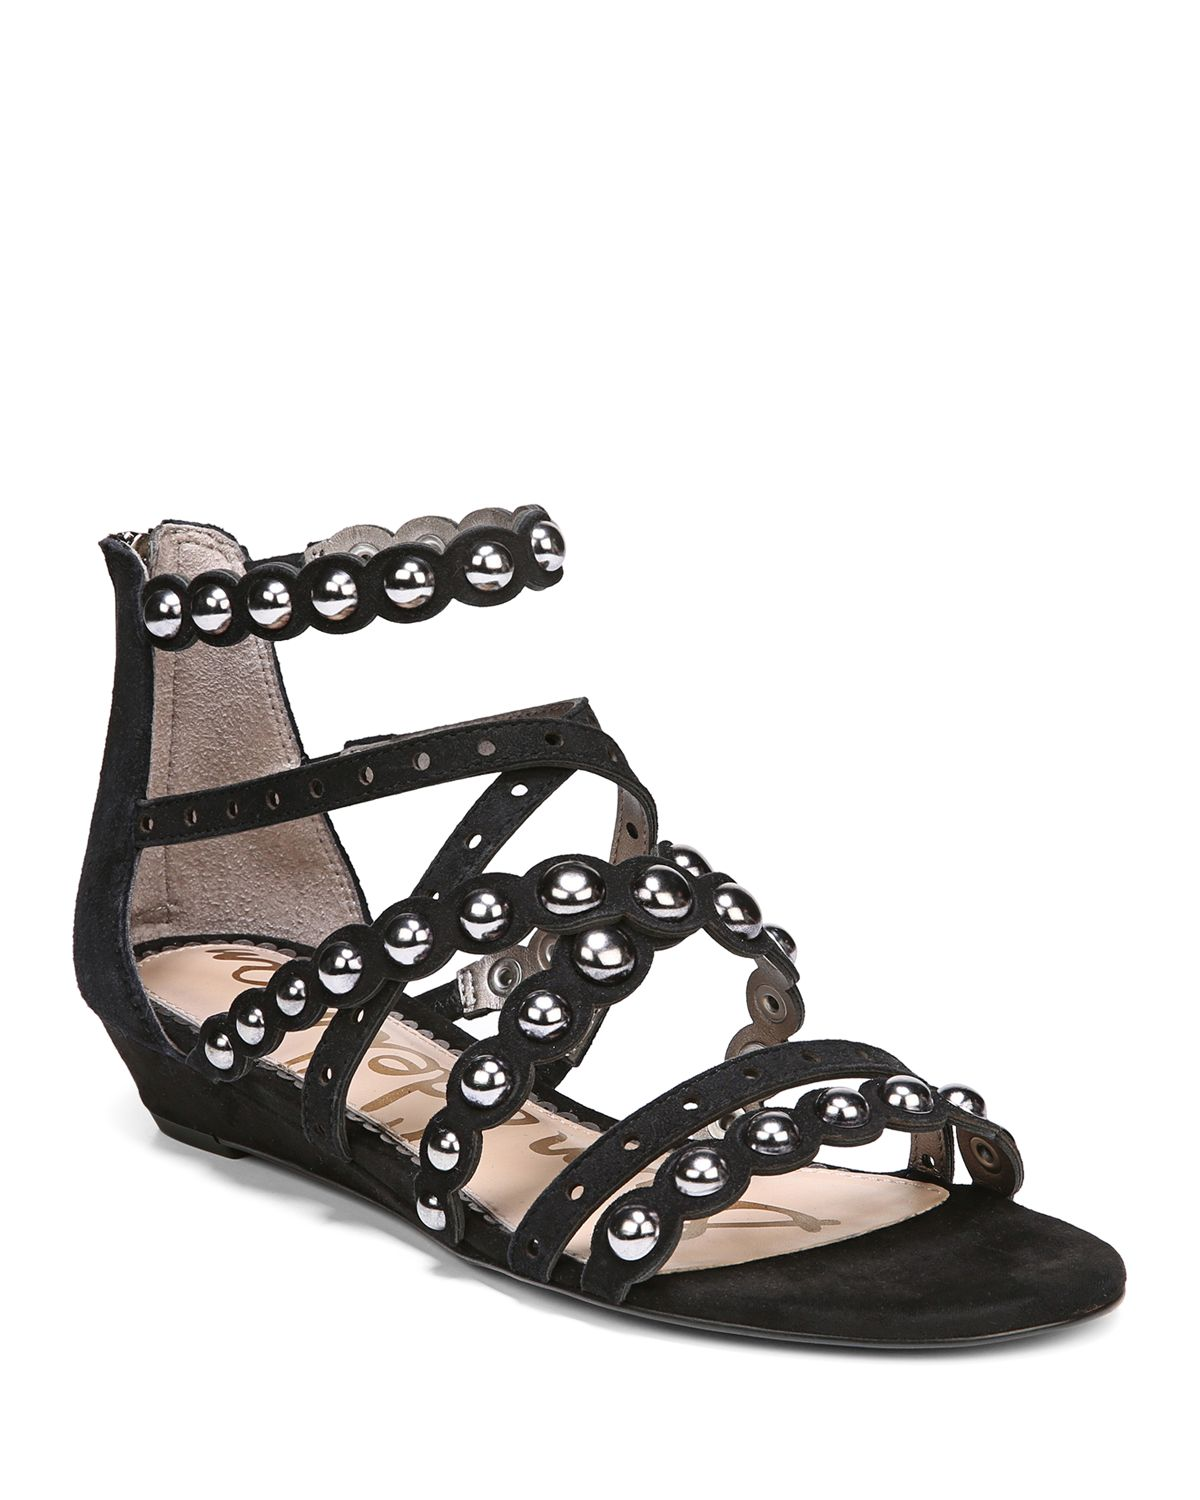 Sam Edelman Women's Dustee Studded Suede Gladiator Sandals